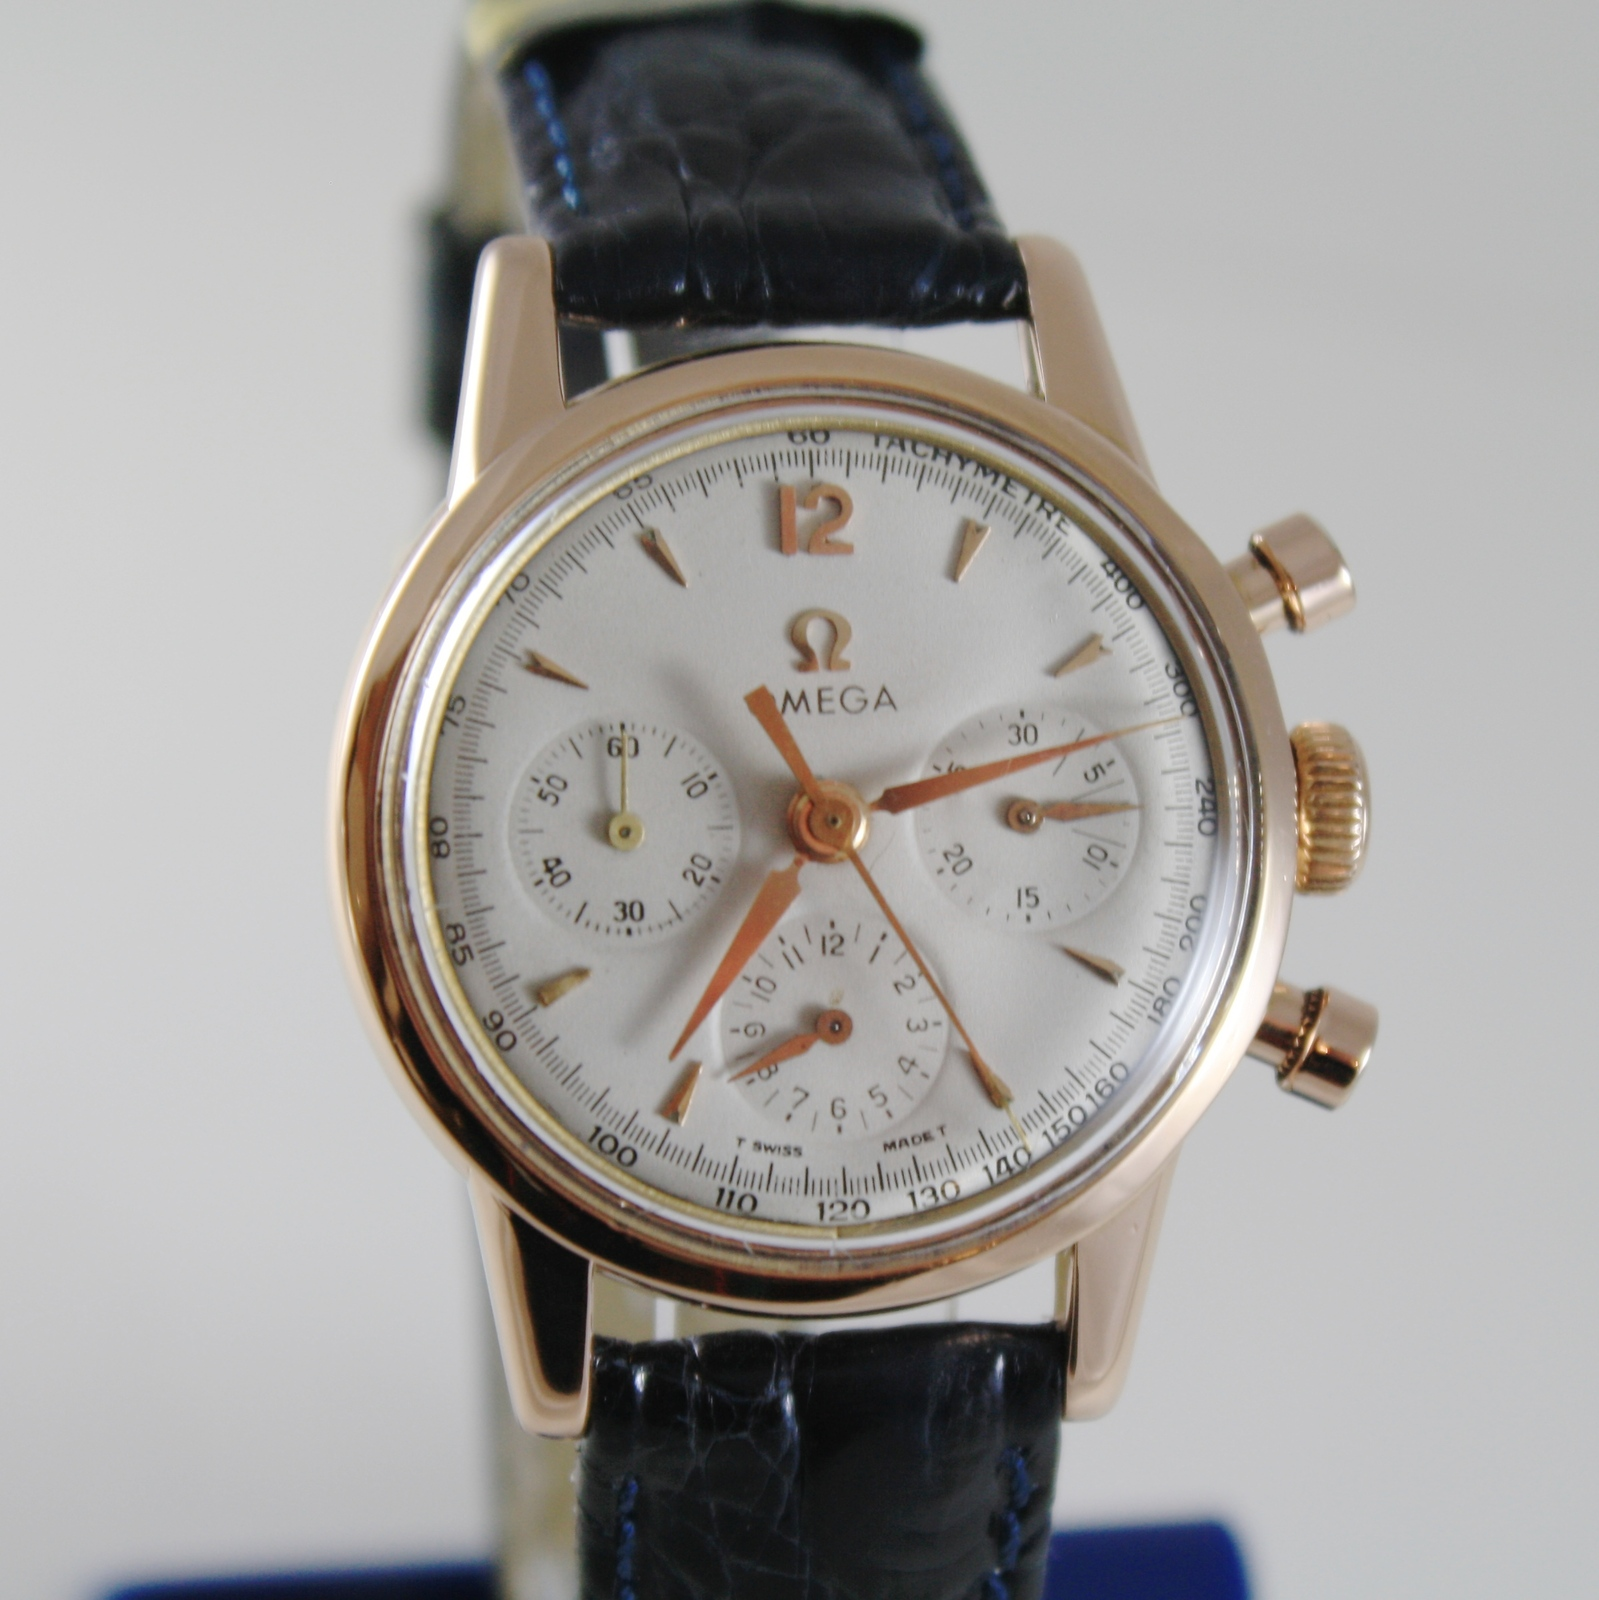 VERY RARE OMEGA 2451 WATCH 18k SOLID ROSE GOLD 321 MOVEMENT CHRONOGRAPH SWISS